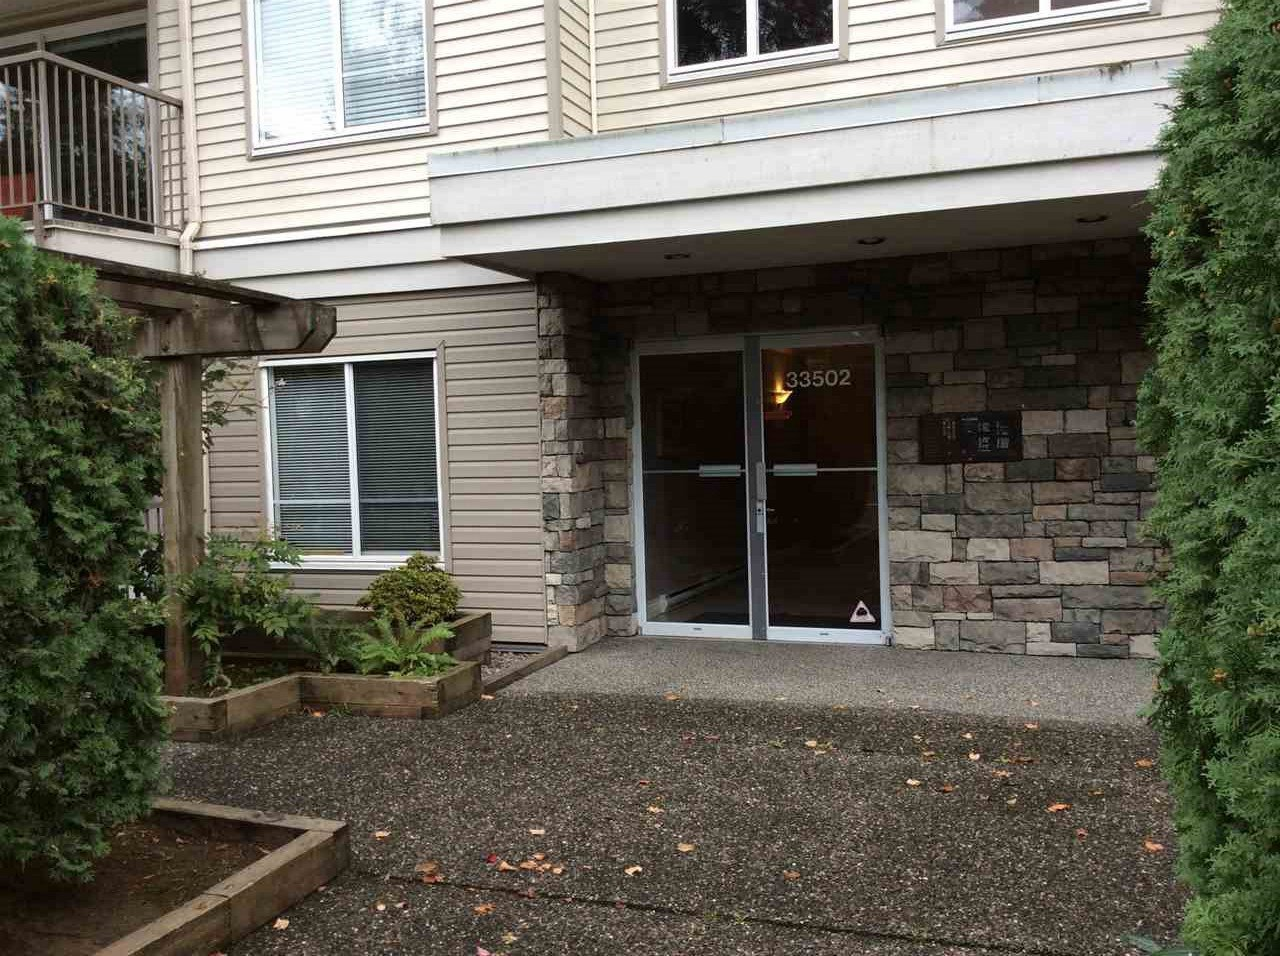 """Photo 2: Photos: 203 33502 GEORGE FERGUSON Way in Abbotsford: Central Abbotsford Condo for sale in """"Carina Crt"""" : MLS®# R2113543"""